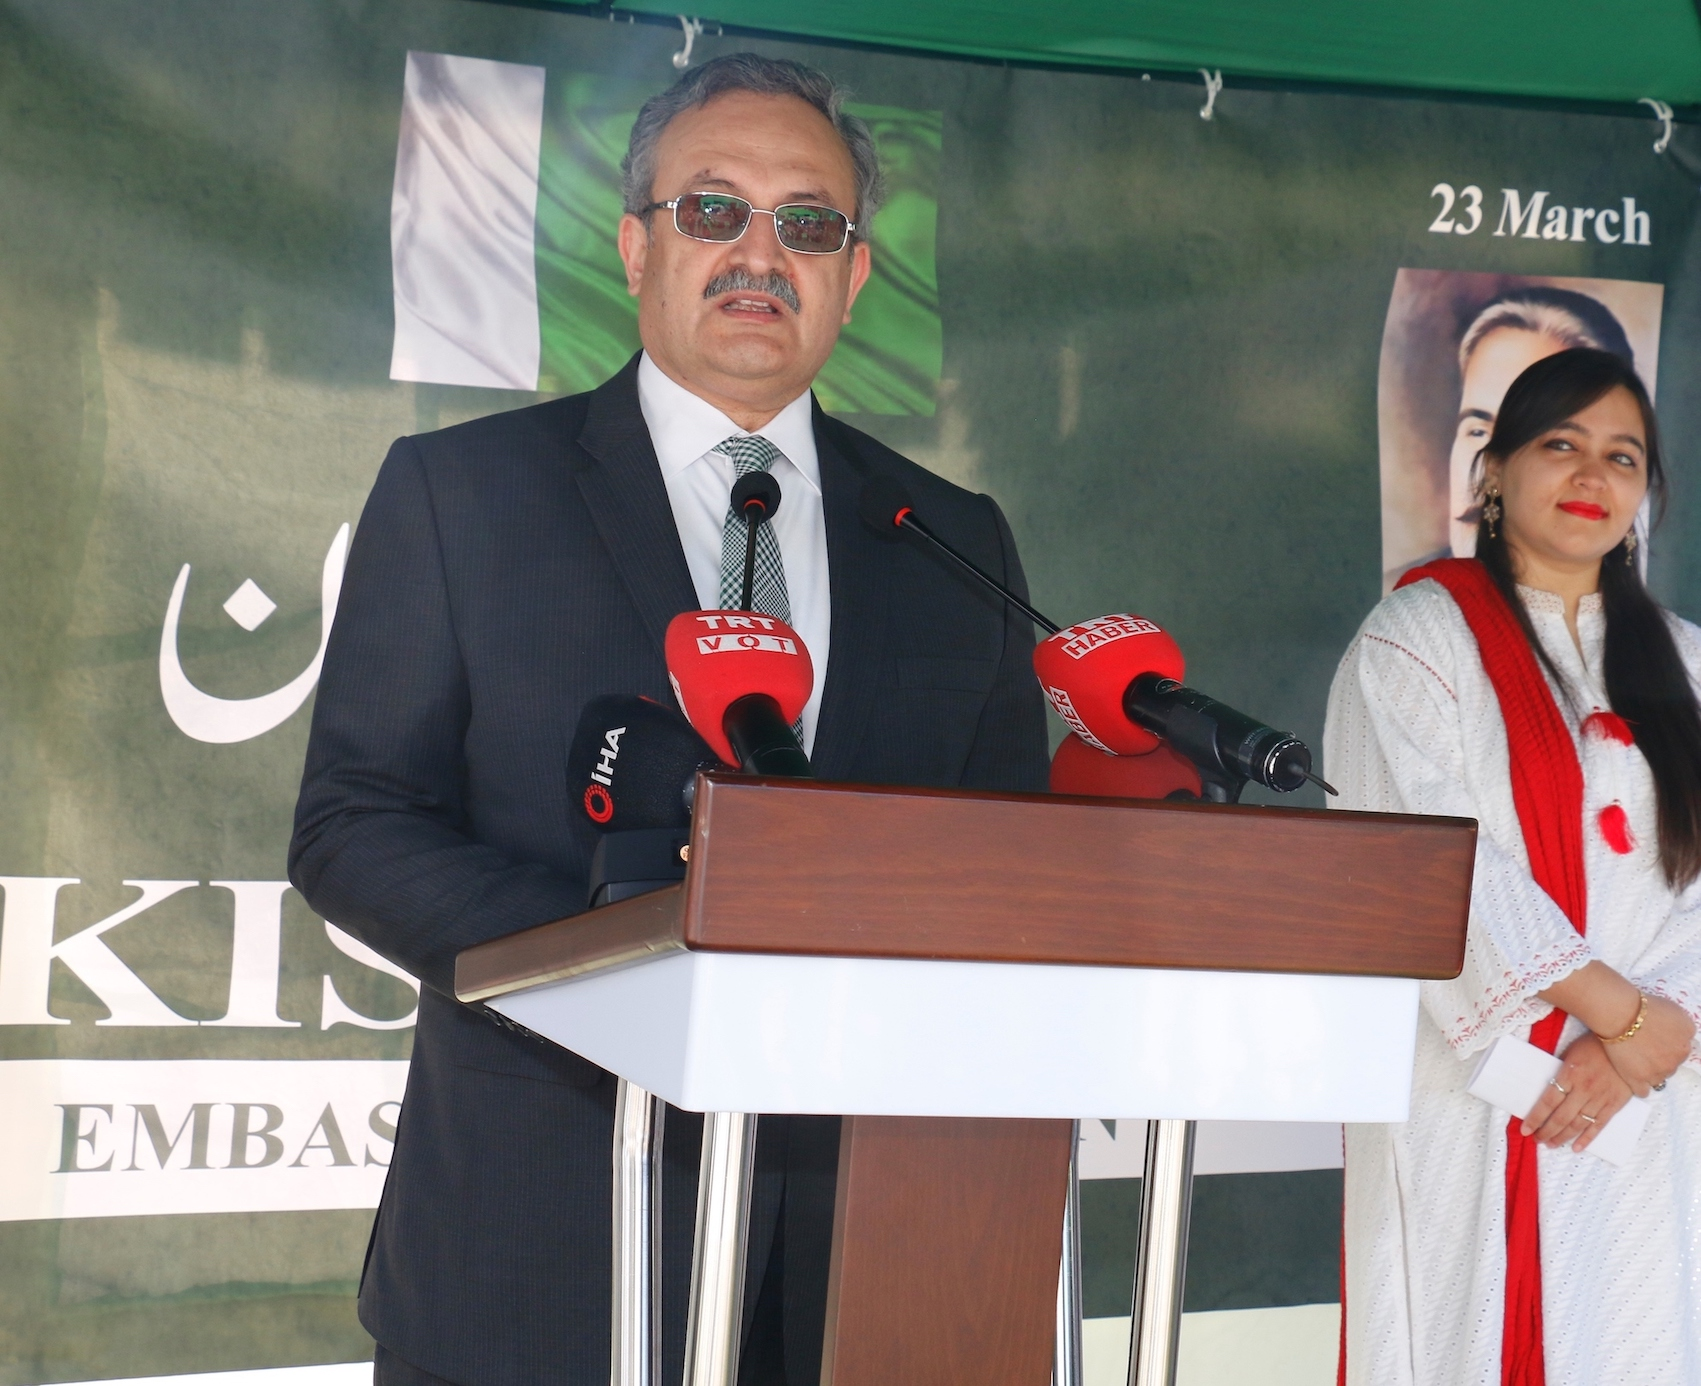 Ambassador Syrus Qazi welcoming guests during Pakistan Day flag hoisting ceremony